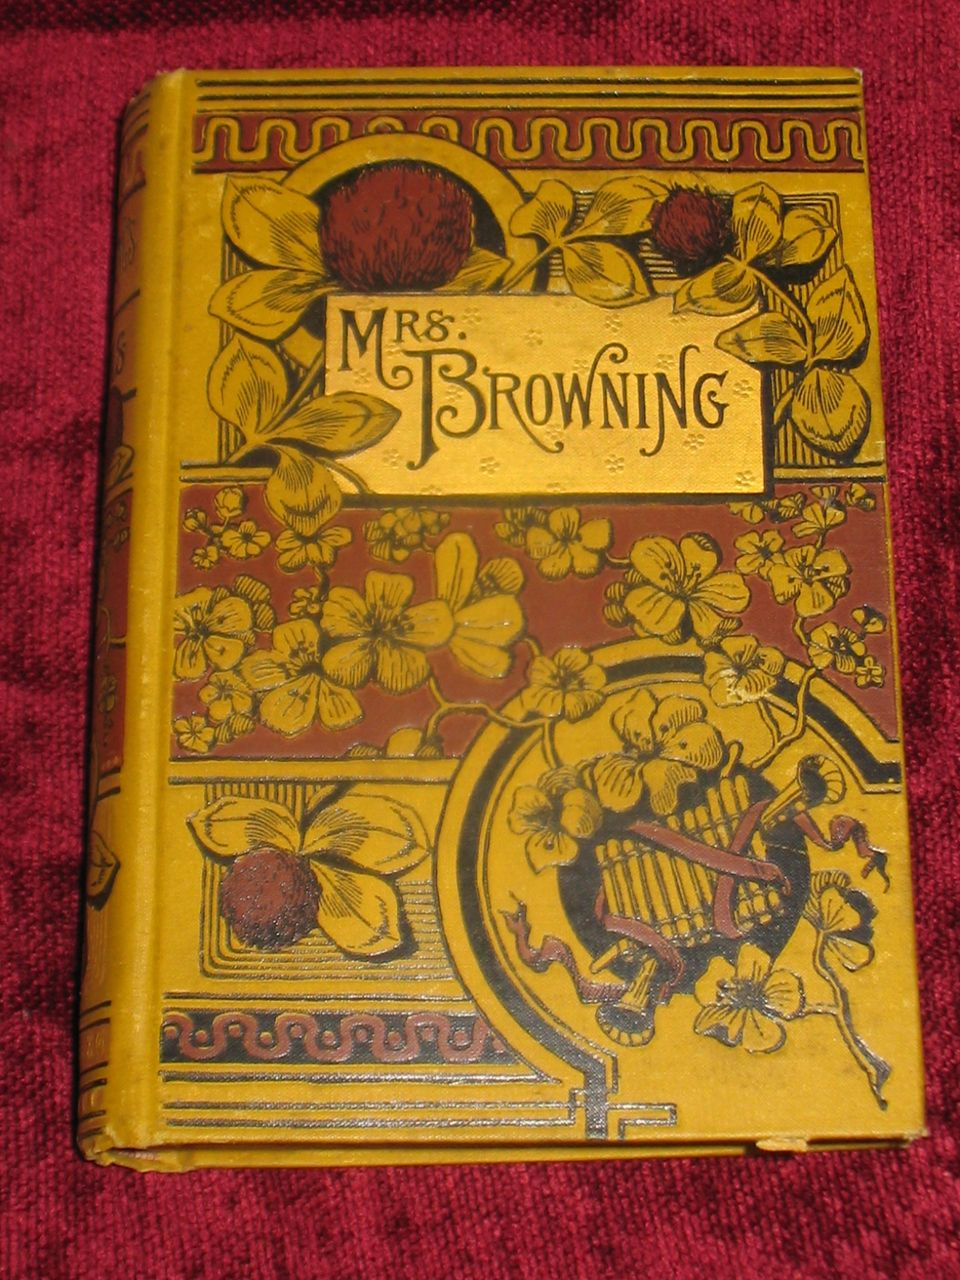 Antique Book Mrs. Browning book by Elizabeth Barrett Browning Circa 1886